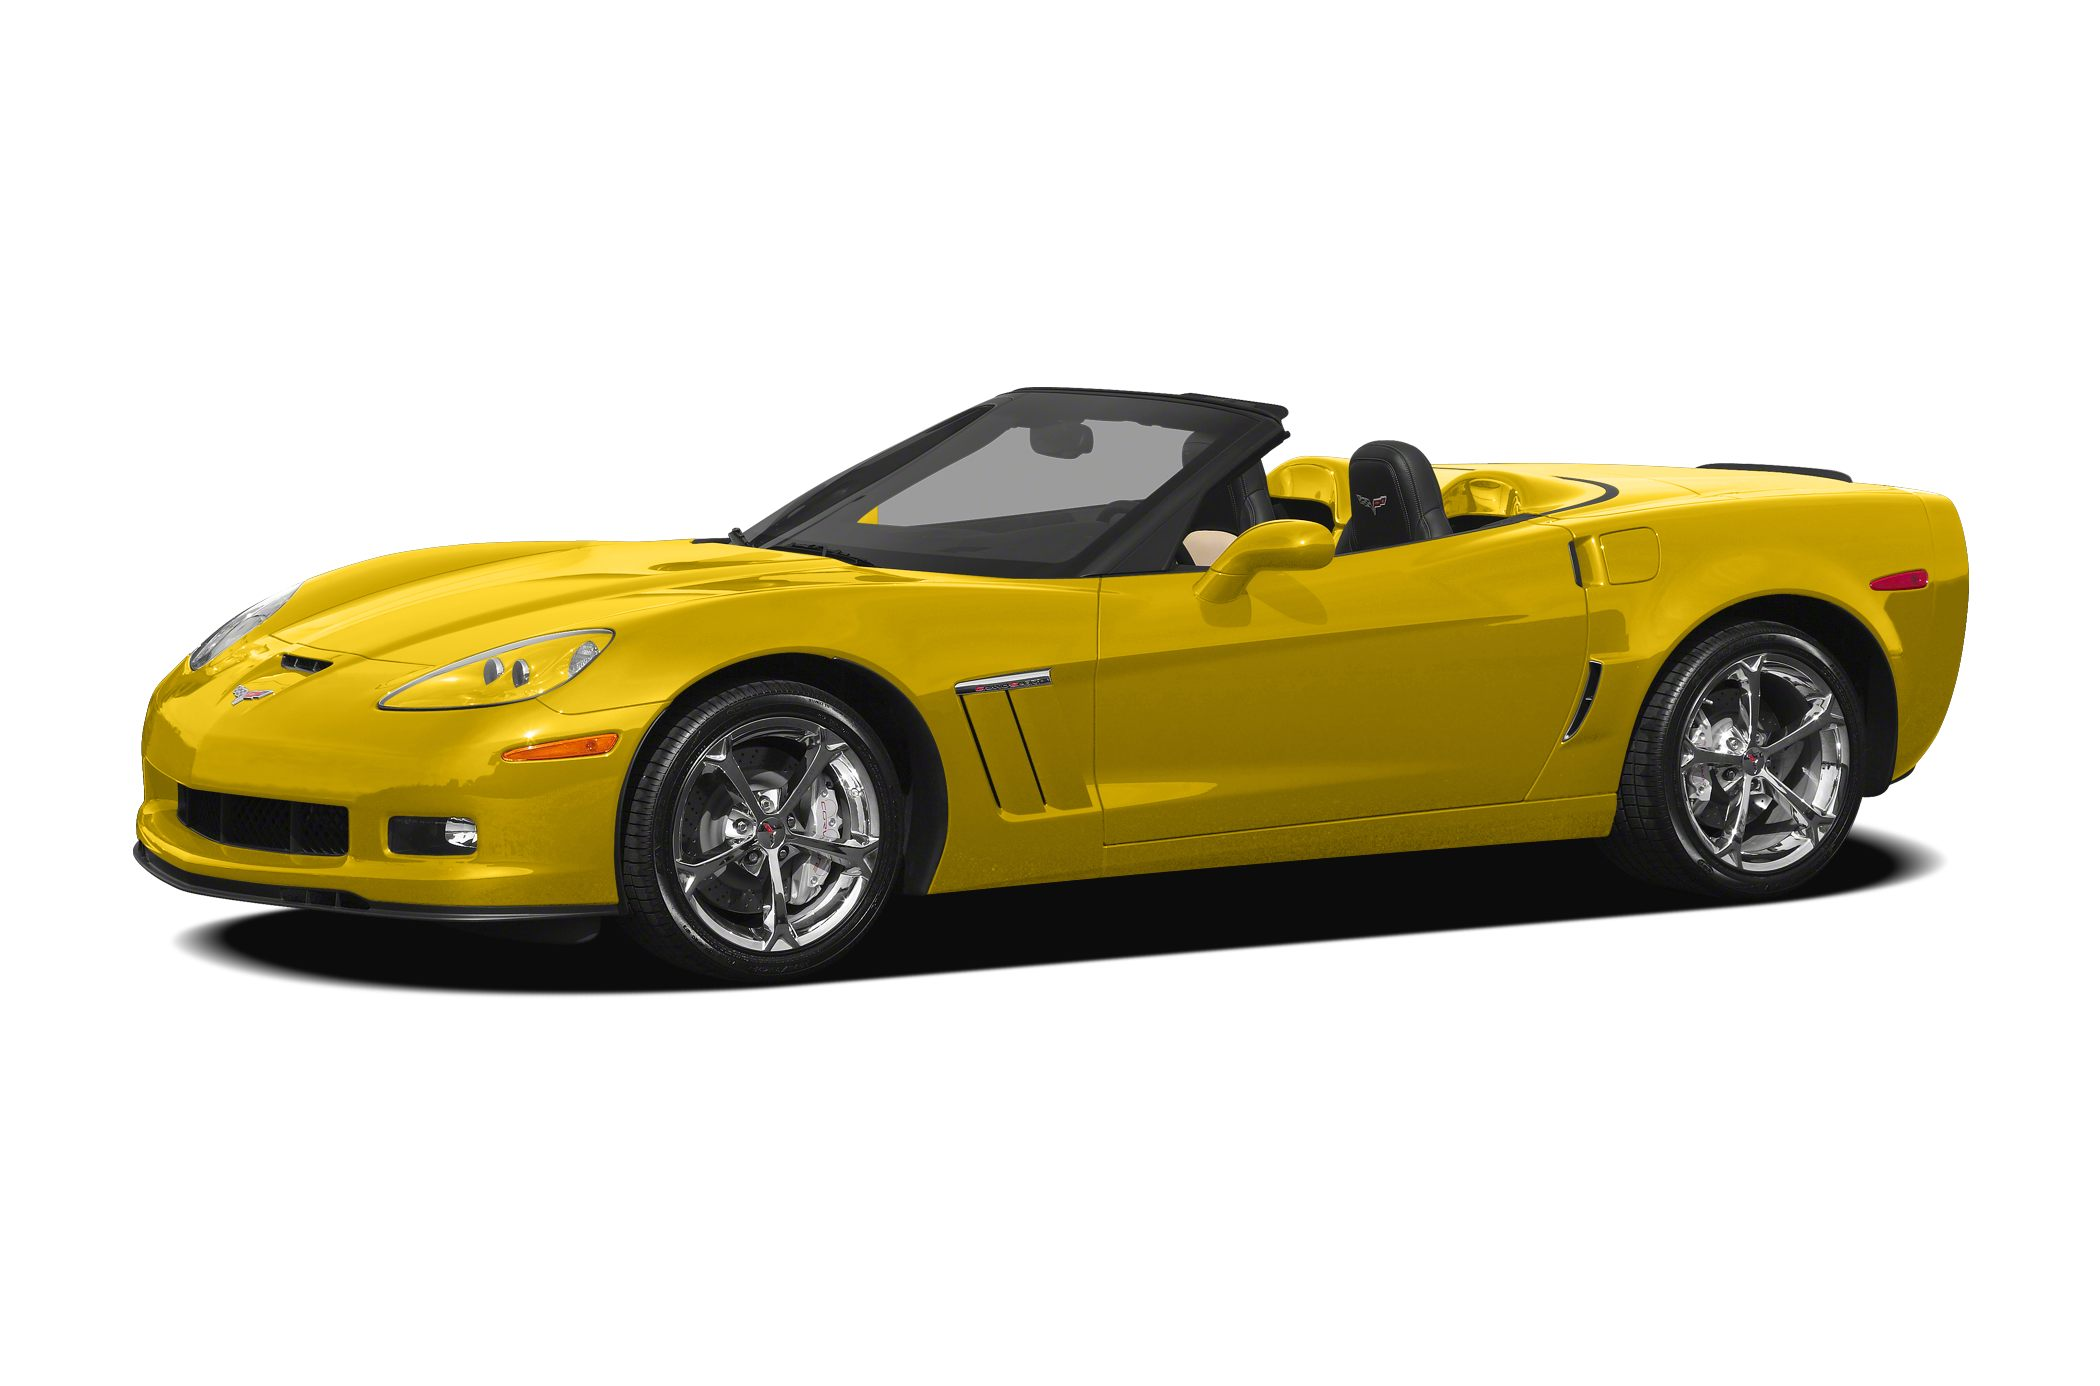 2012 Chevrolet Corvette Grand Sport A ONE OWNER LOCAL TRADE-IN WITH LOW MILES Buy with confidence